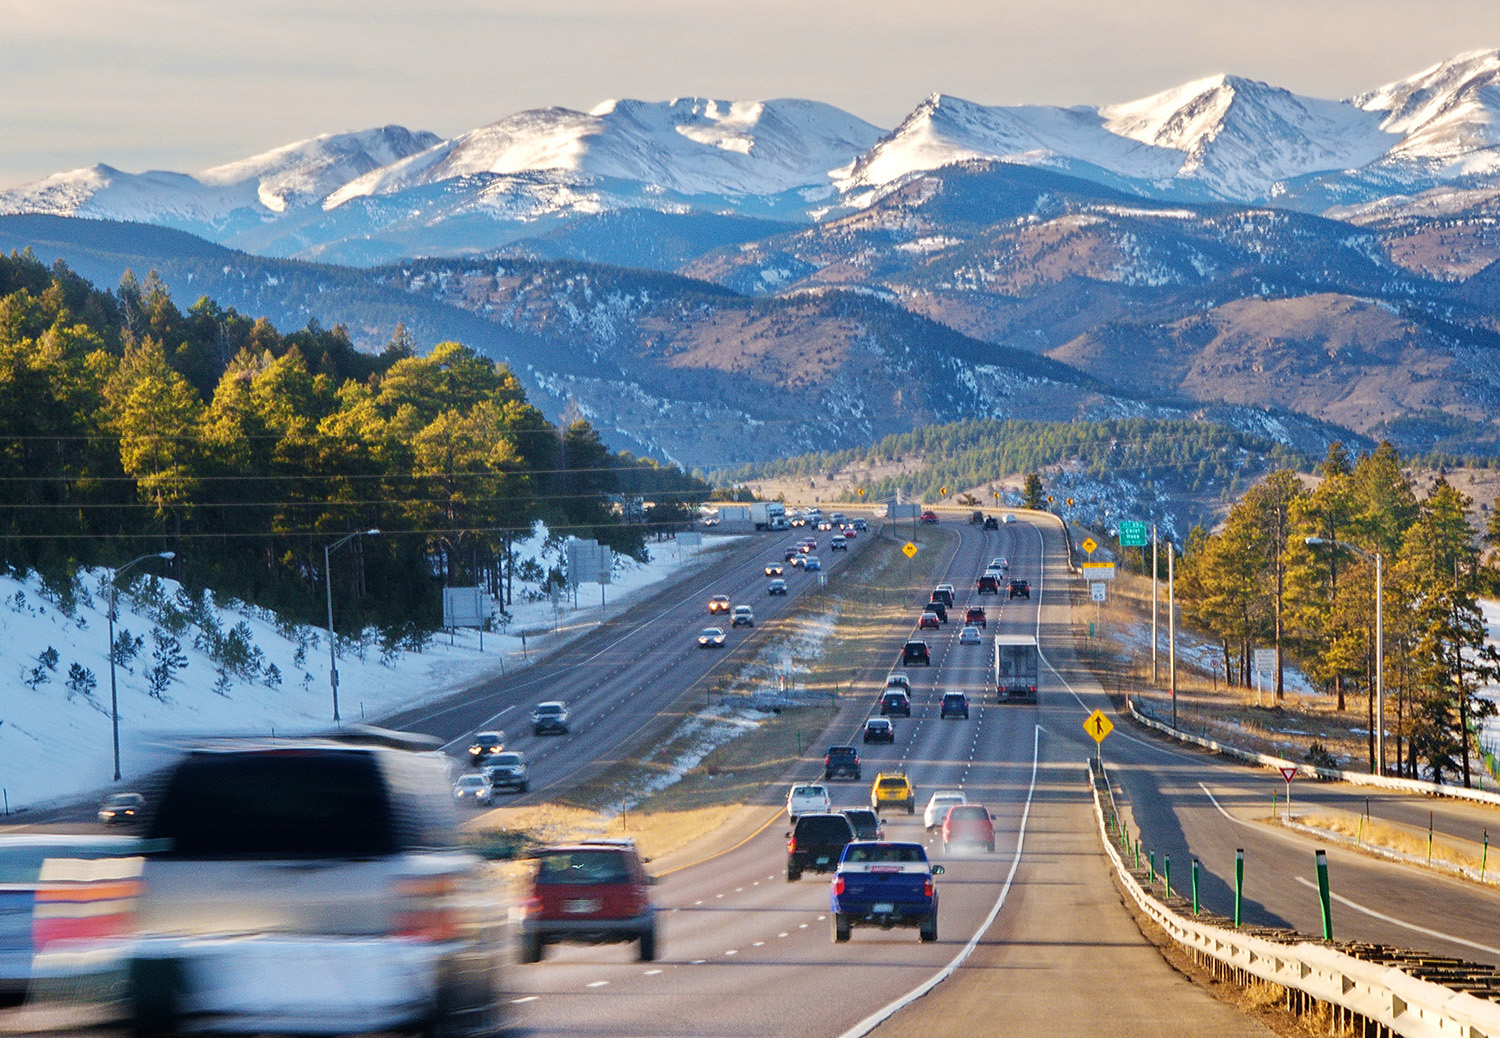 Denver mountains highway.jpg